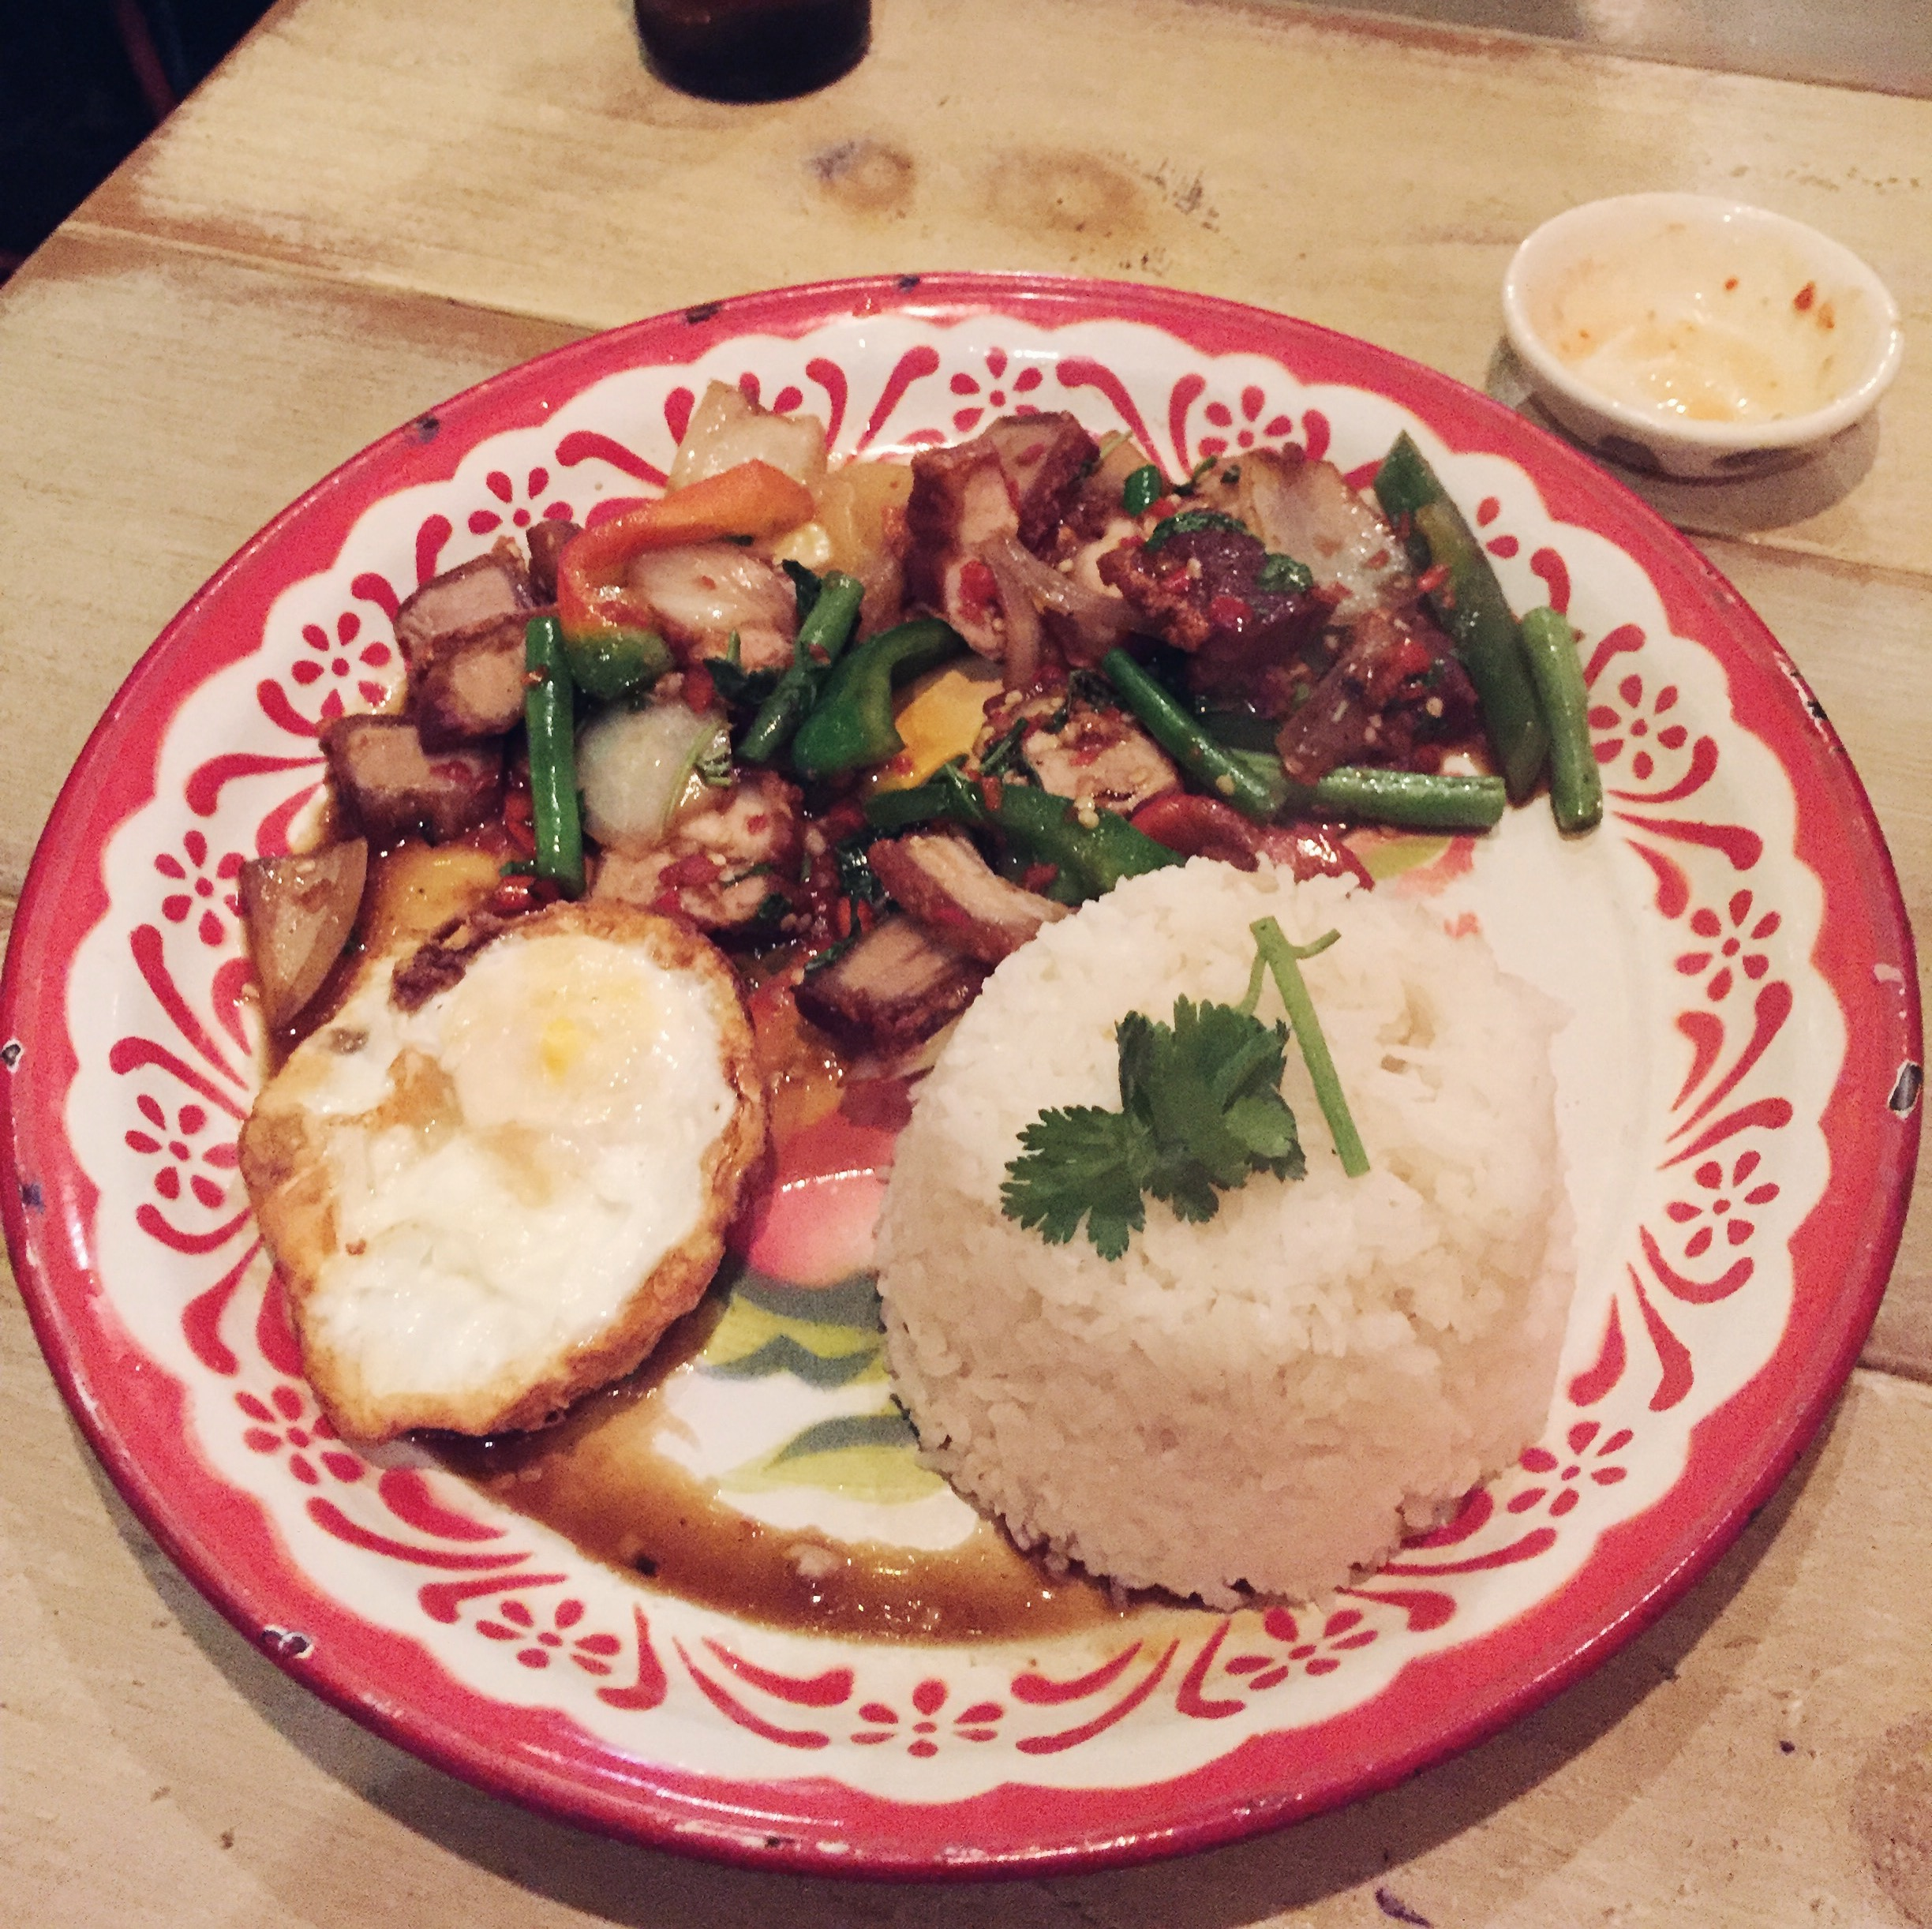 I went to My Thai in York,again. It was excellent